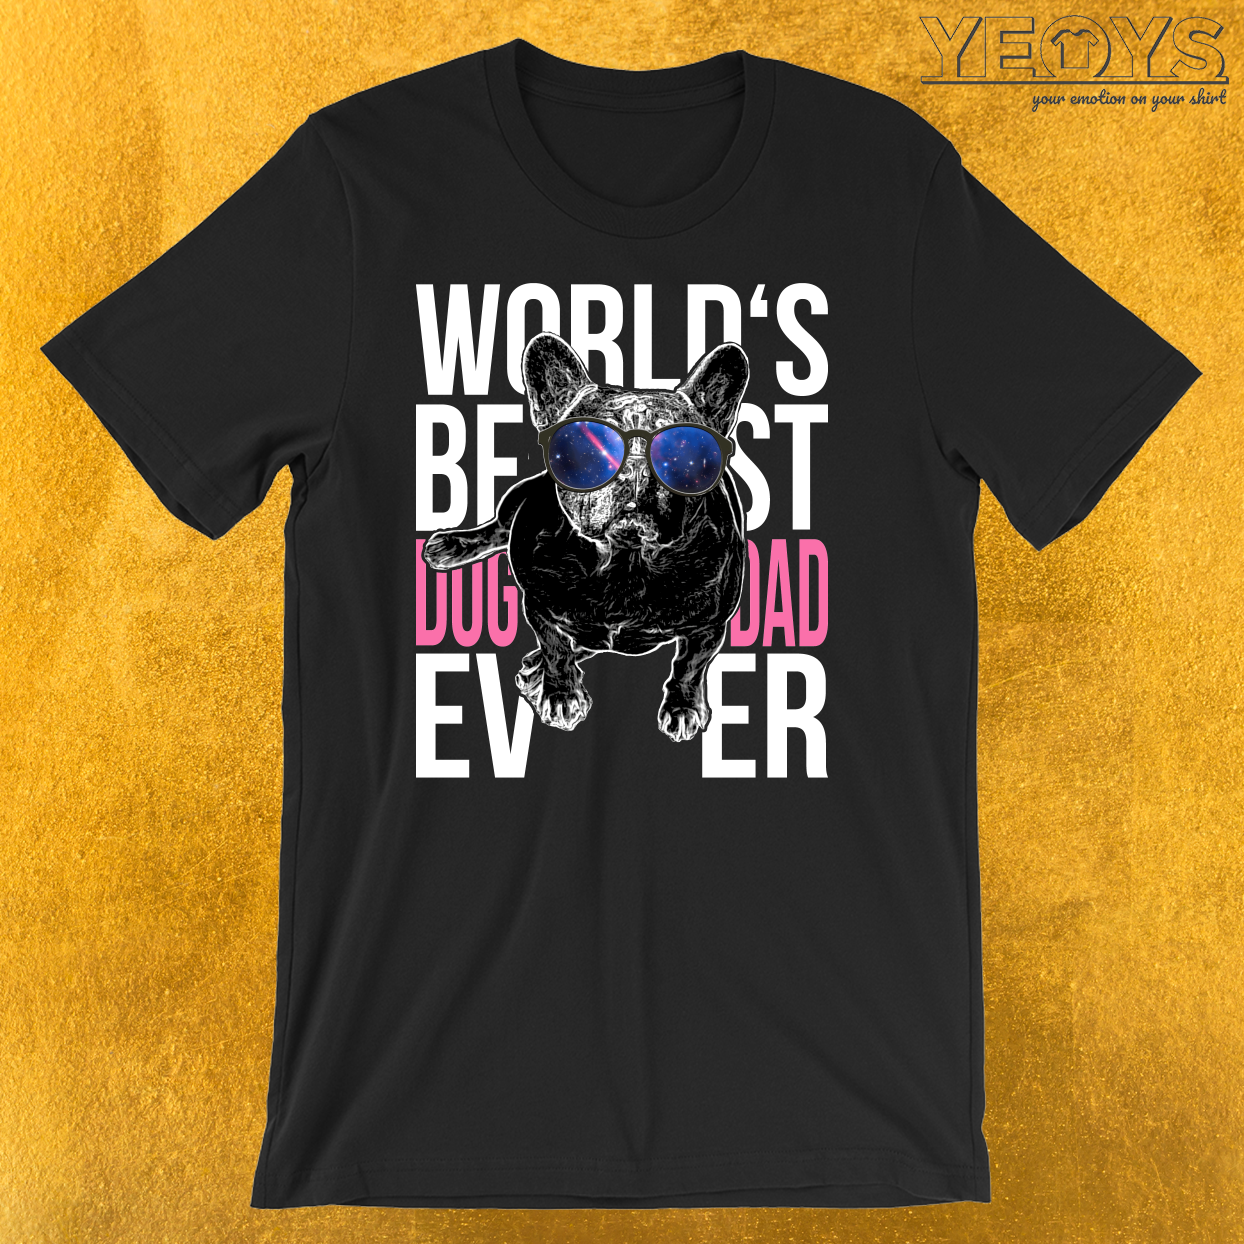 Worlds Best Dog Dad Pug T-Shirt